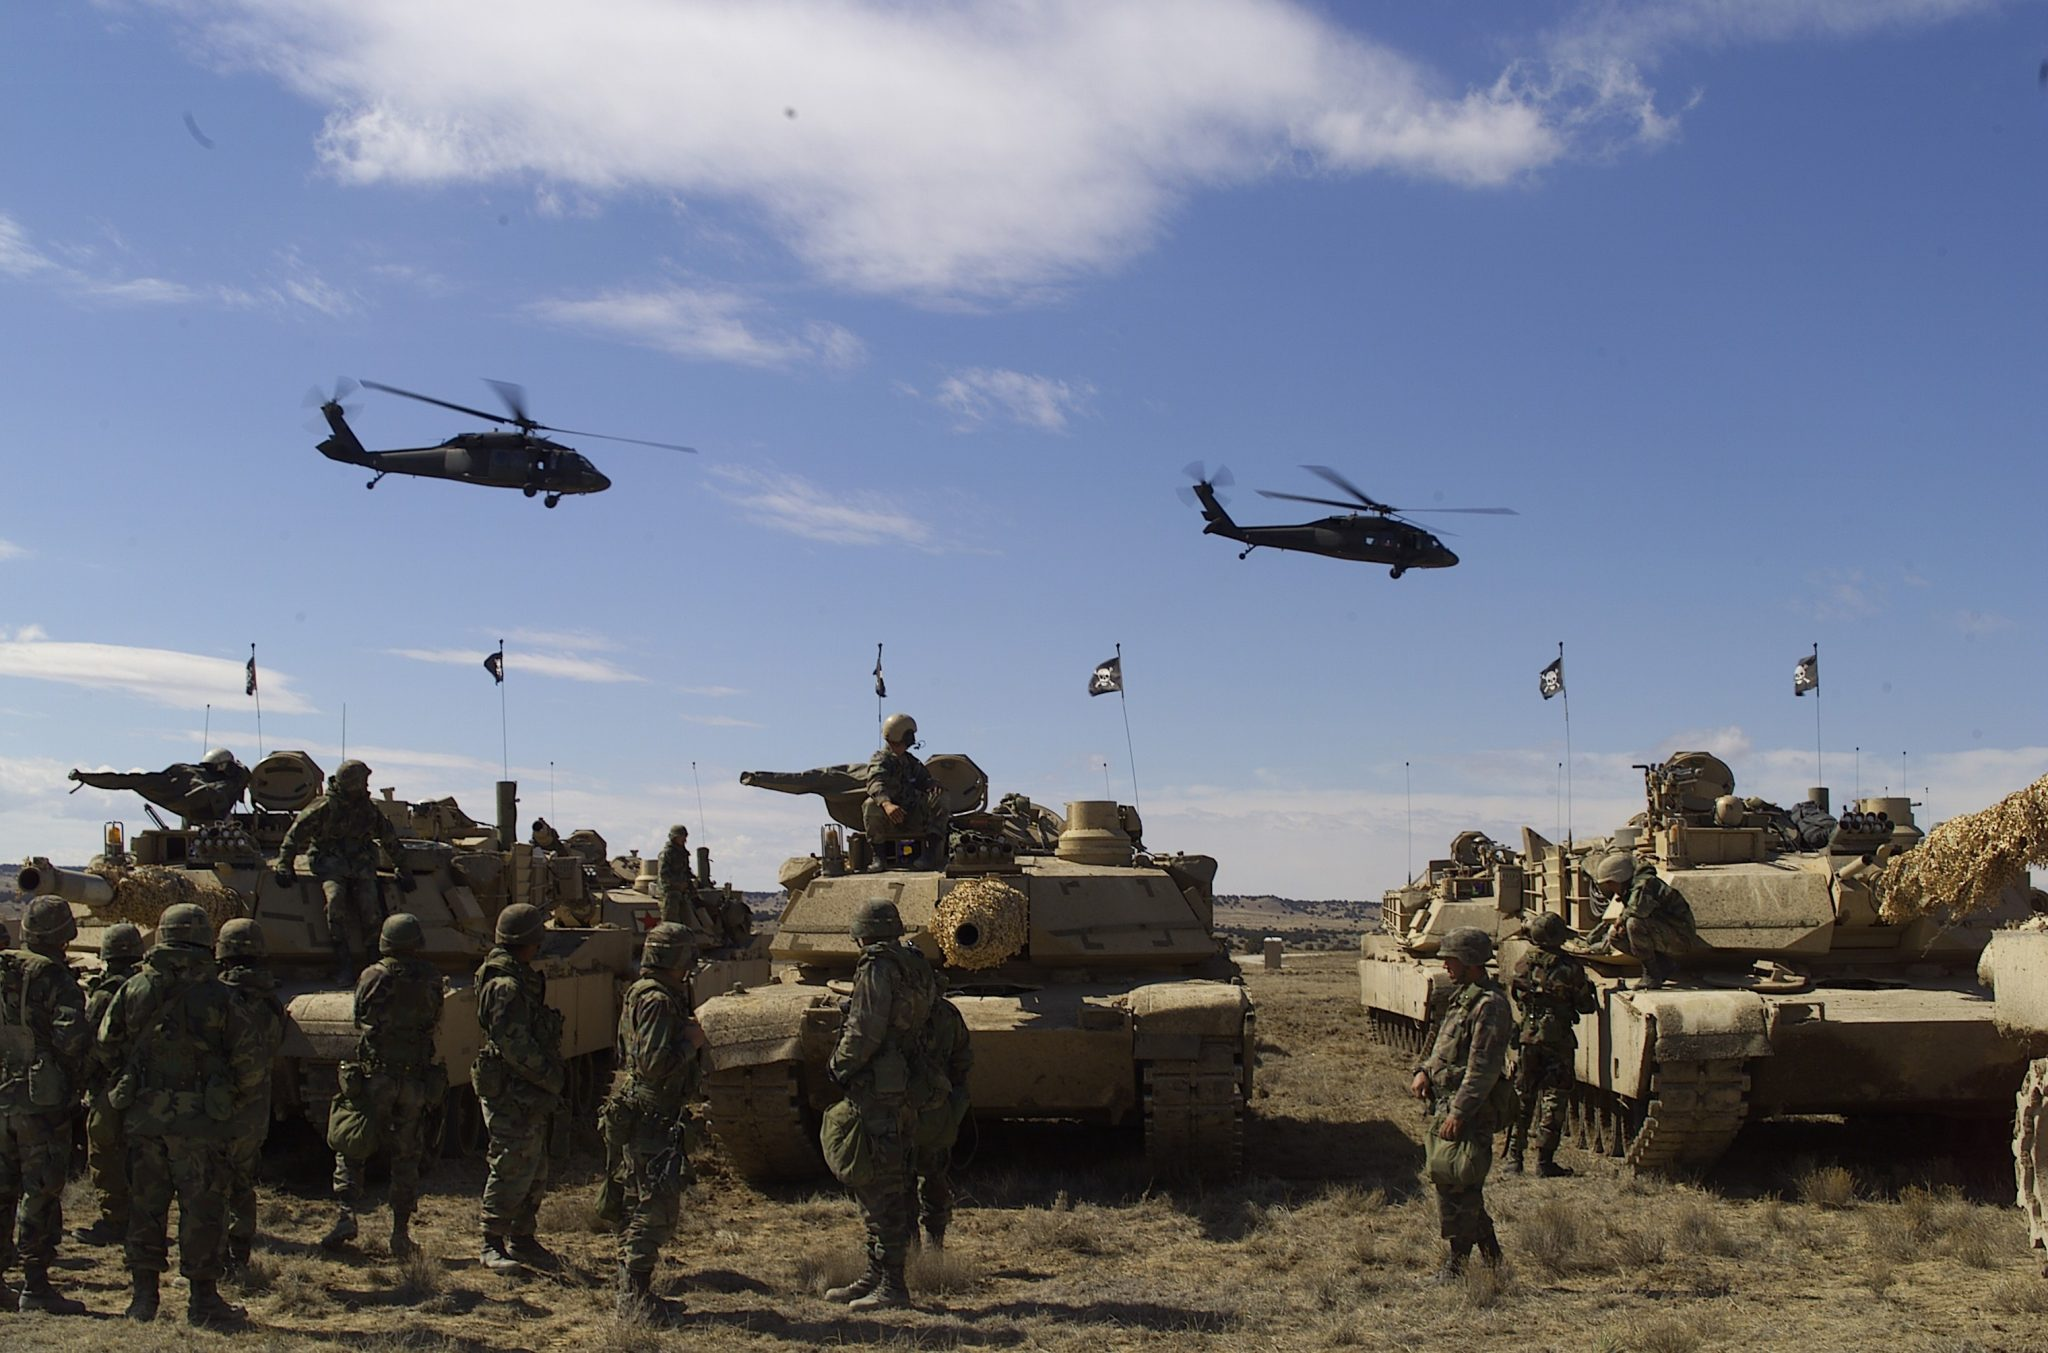 Ft. Carson soldiers conducting training exercises.